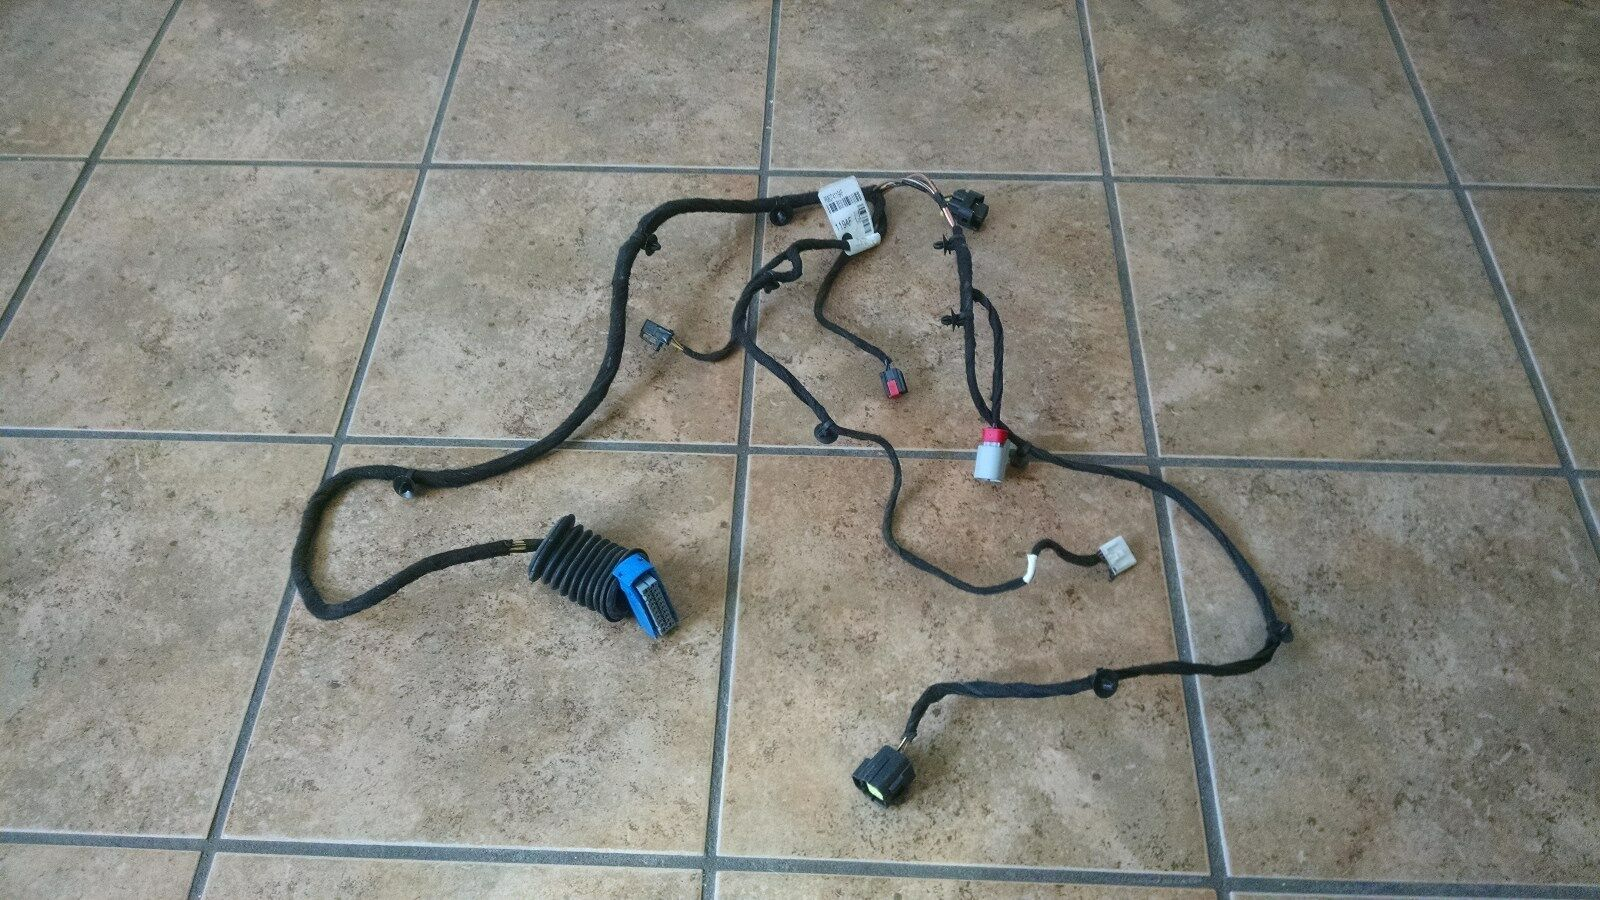 Oem 2012 Fiat Driver Side Door Wiring Harness With Power Window Picture 1 Of 4